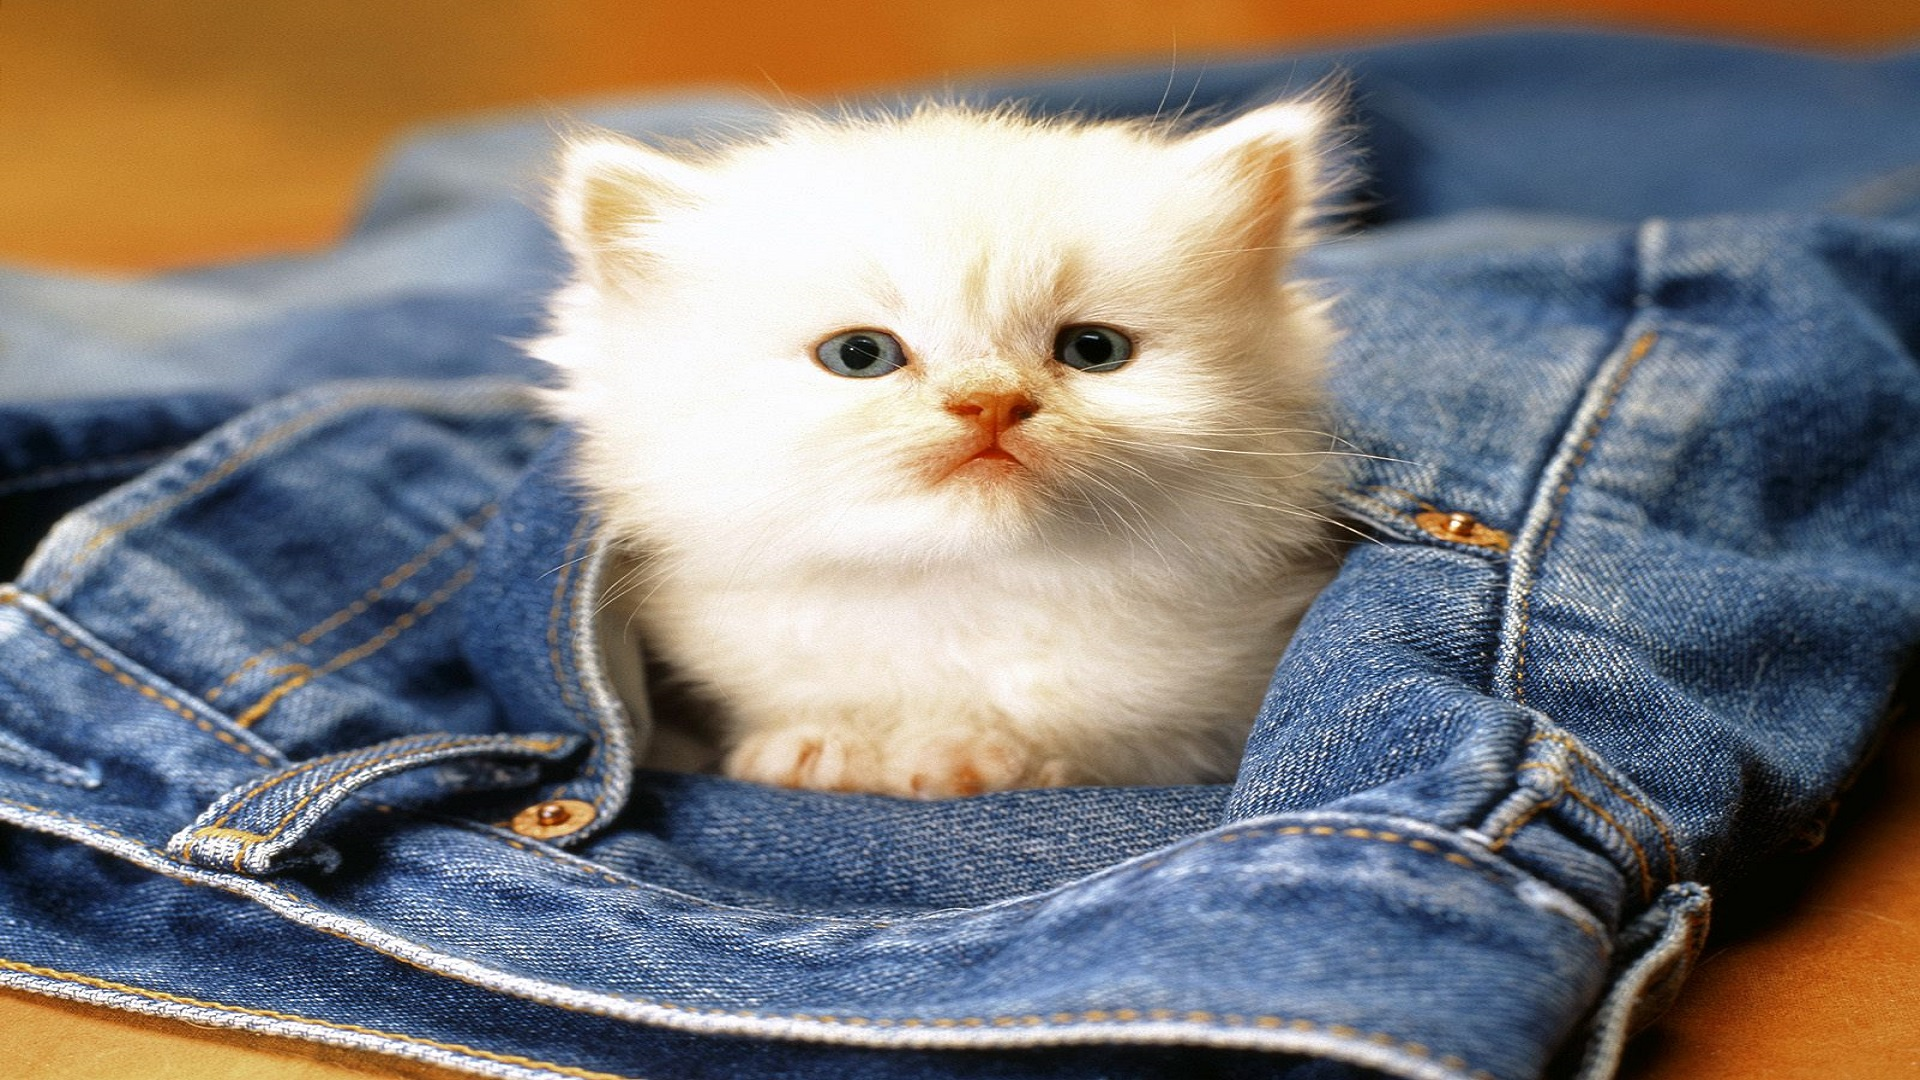 Beautiful Cats Free Hd Wallpapers For Desktops Hd Wallpaper